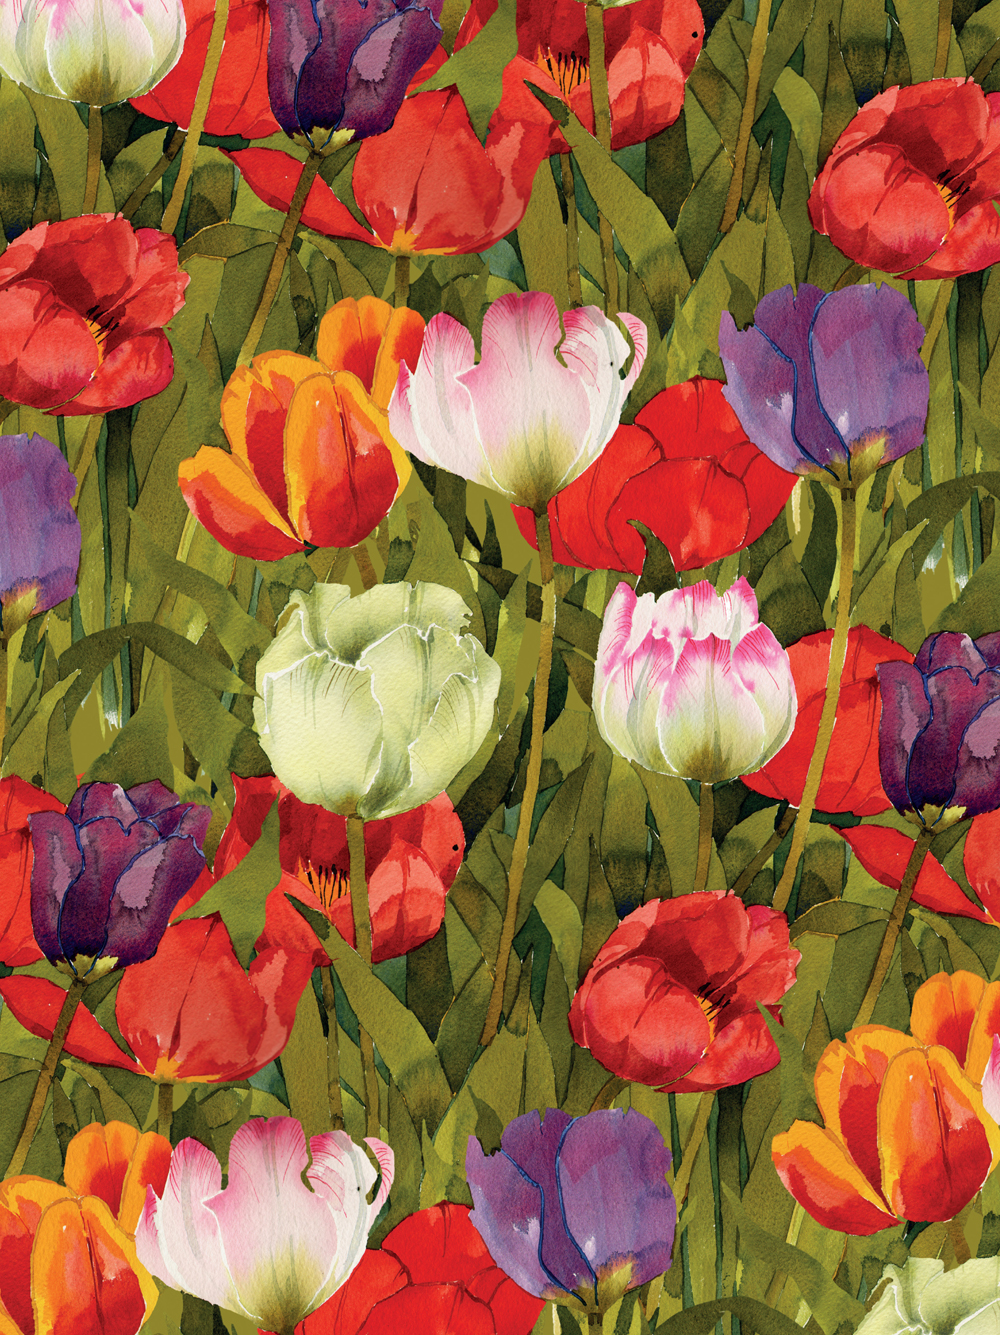 Journal, Spring Tulips image